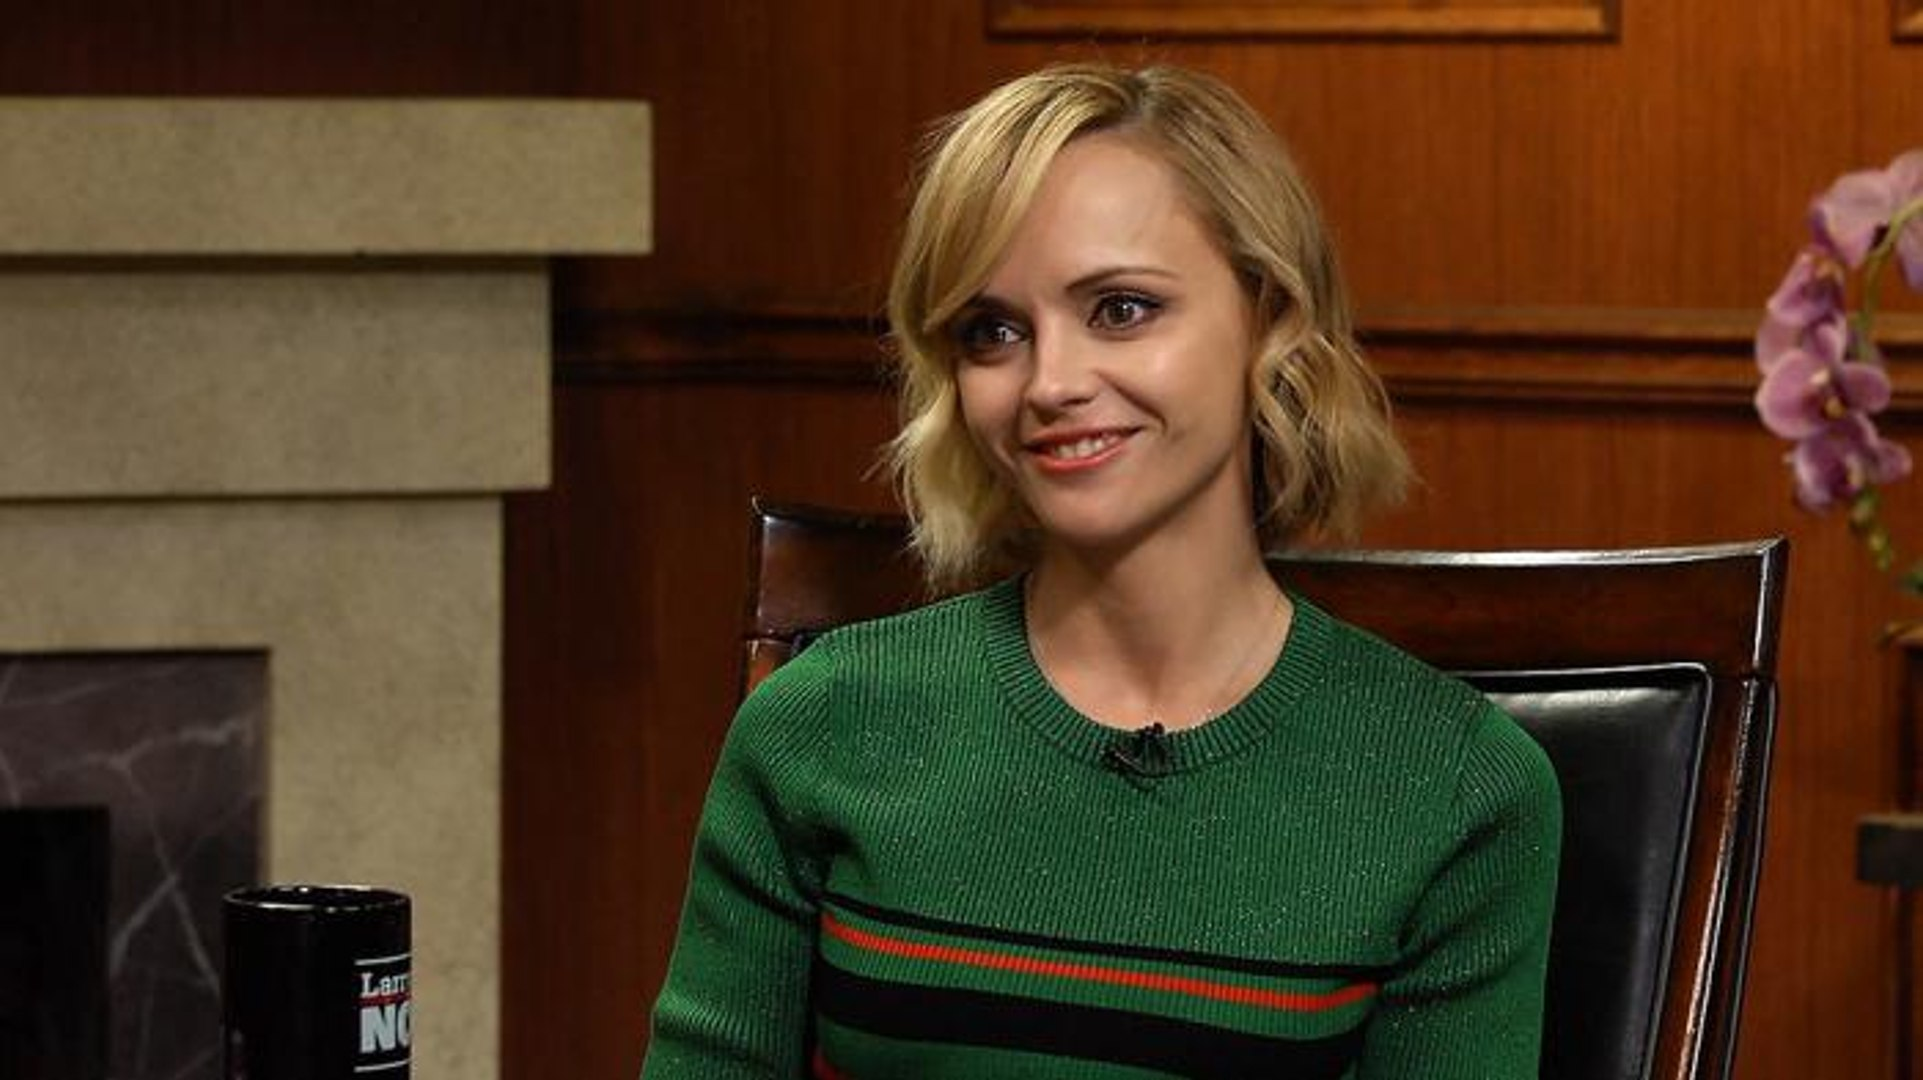 Christina Ricci: Women in Hollywood still have a ways to go